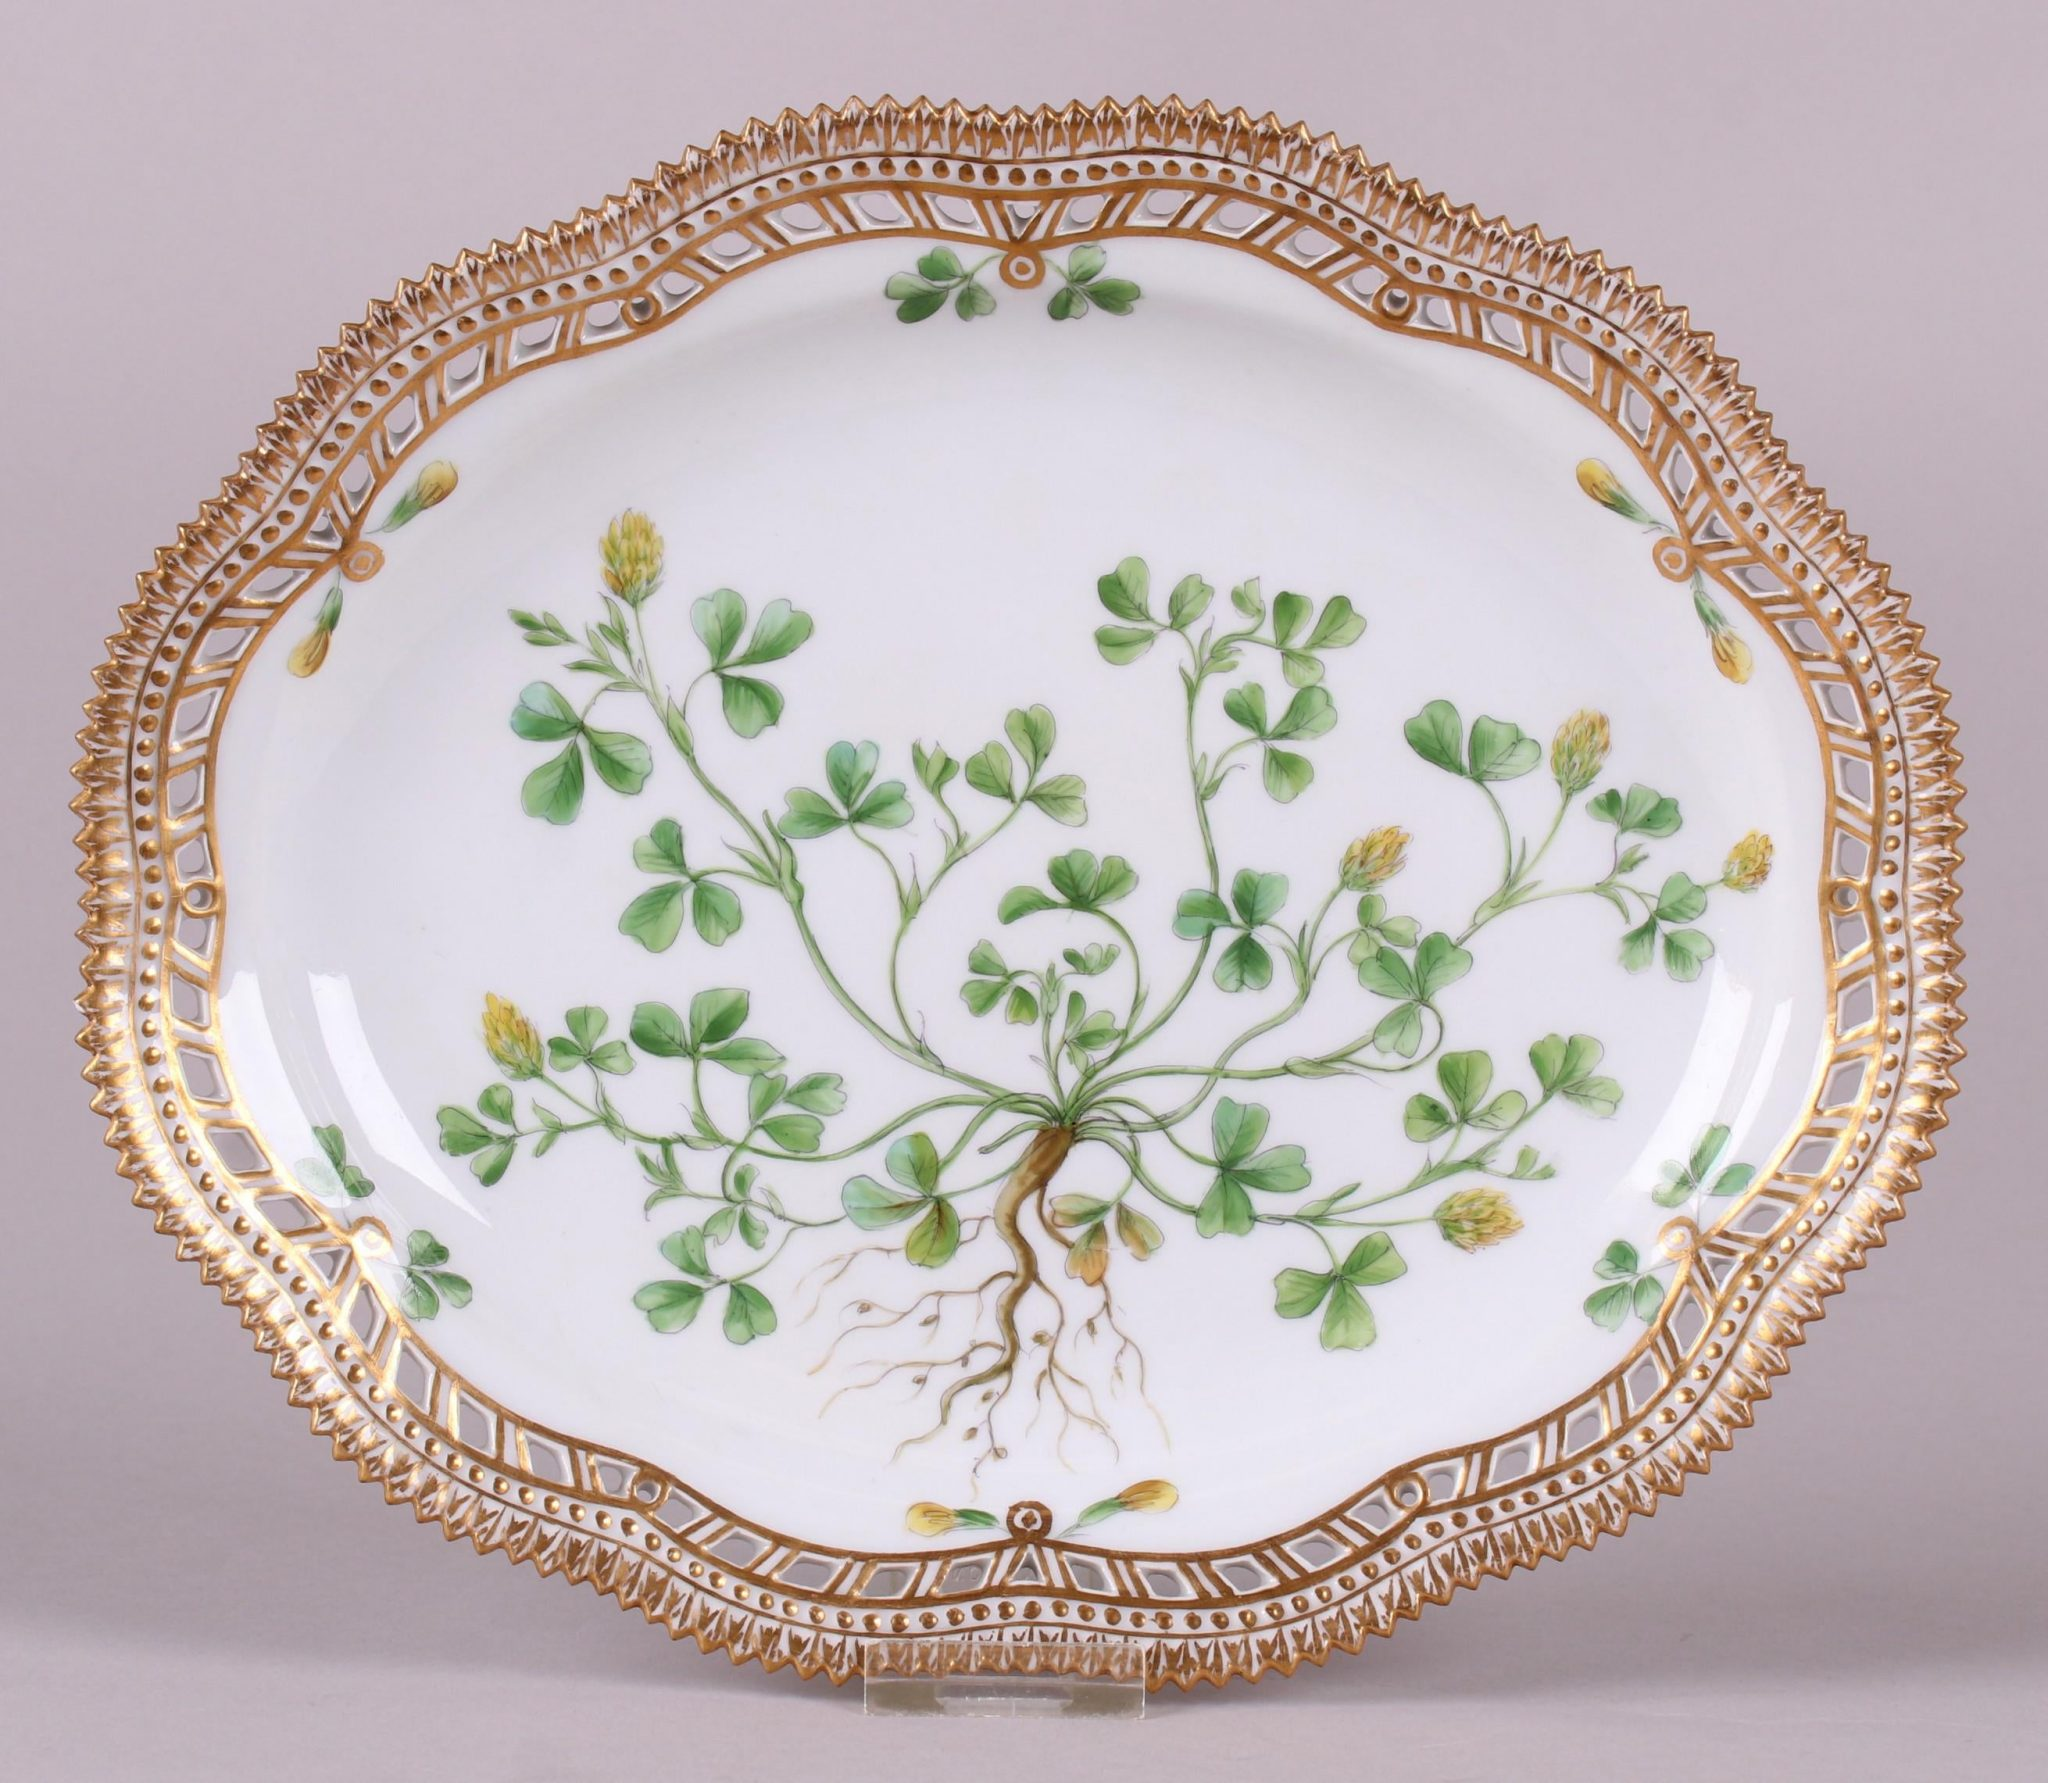 320002: A Royal Copenhagen Flora Danica Platter, Realized $500